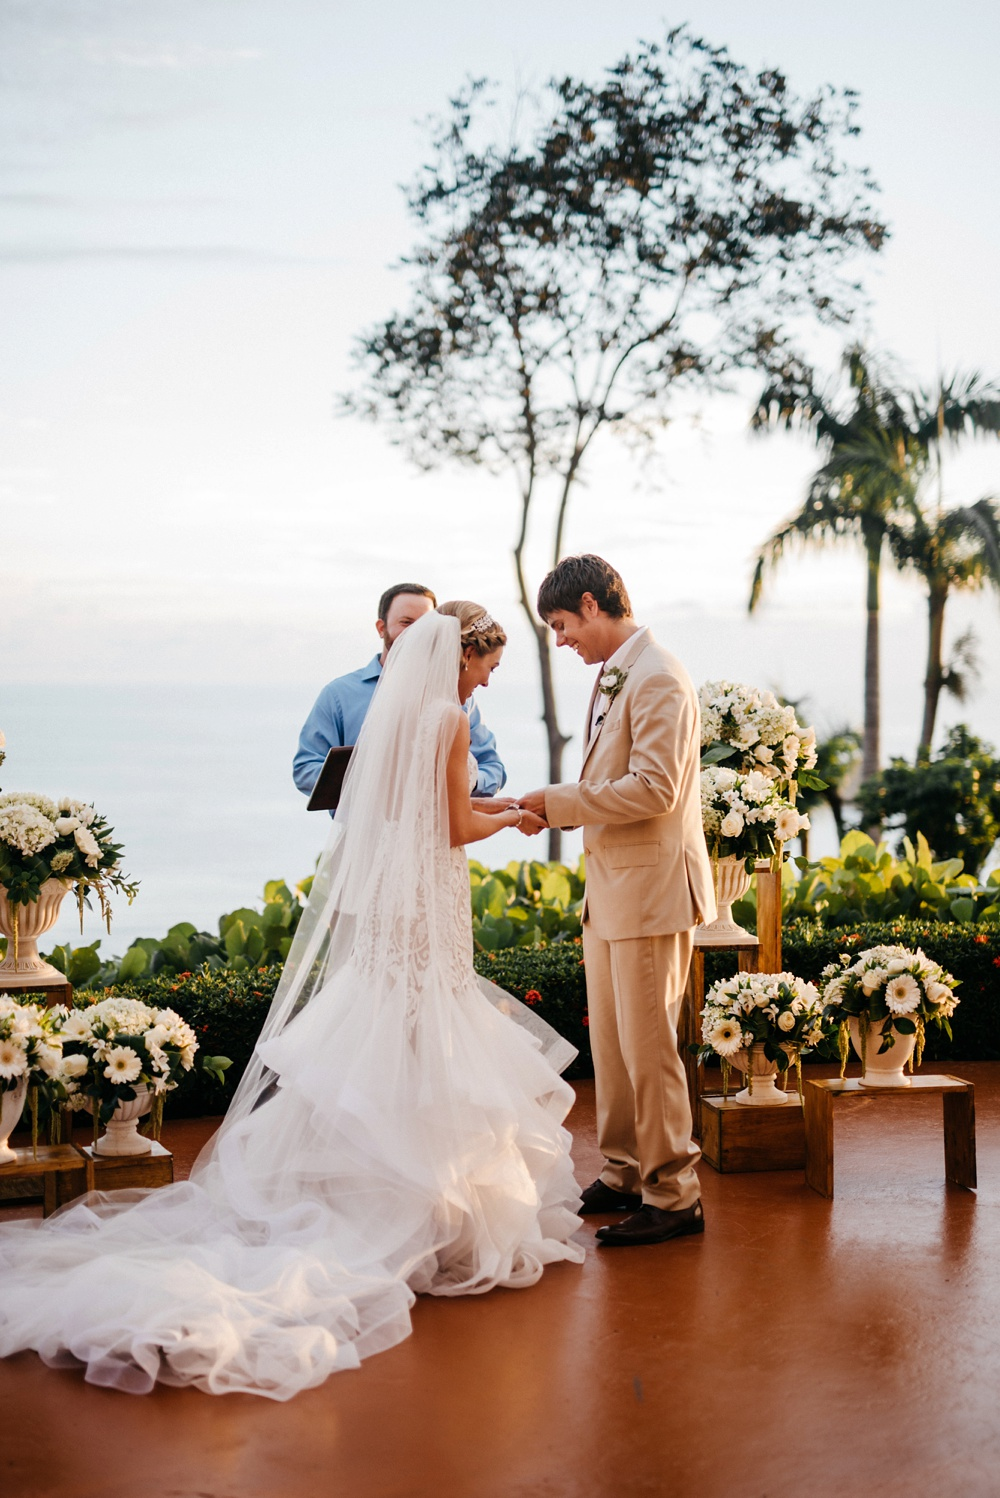 wedding vow exchange at hotel la mariposa